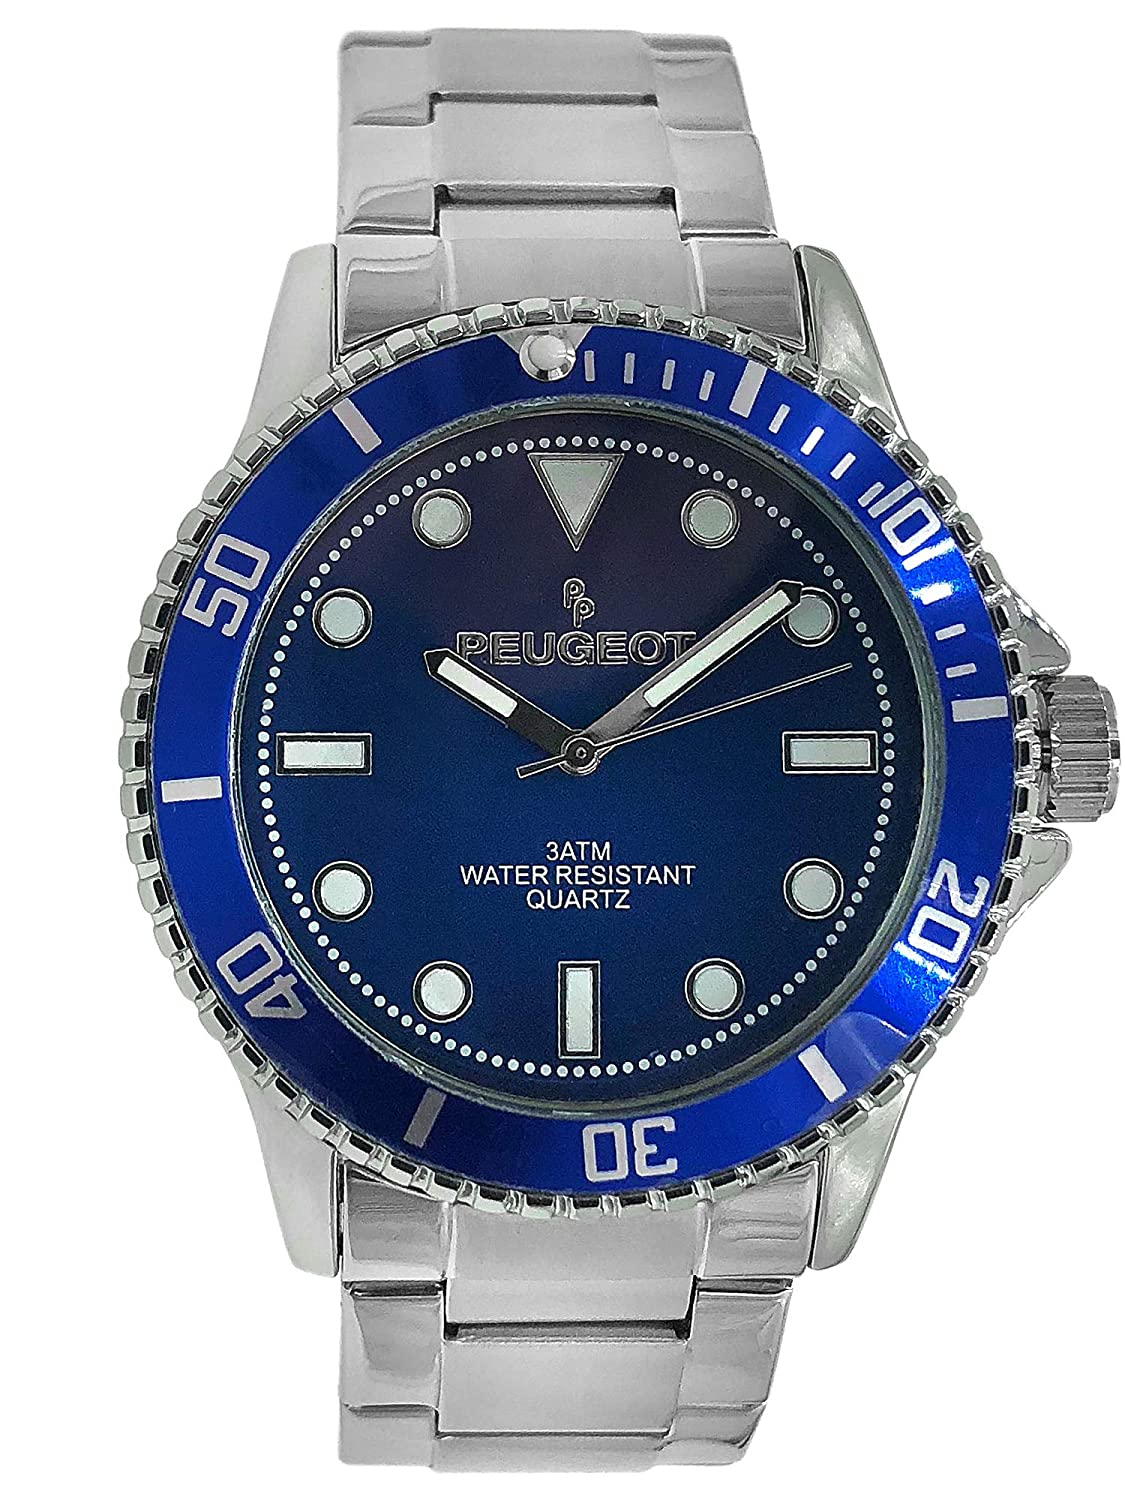 Amazon.com: Peugeot Mens Sports Watch with Rotating Bezel Pro Dive, Blue Dial & Stainless Steel Silver Bracelet: Watches